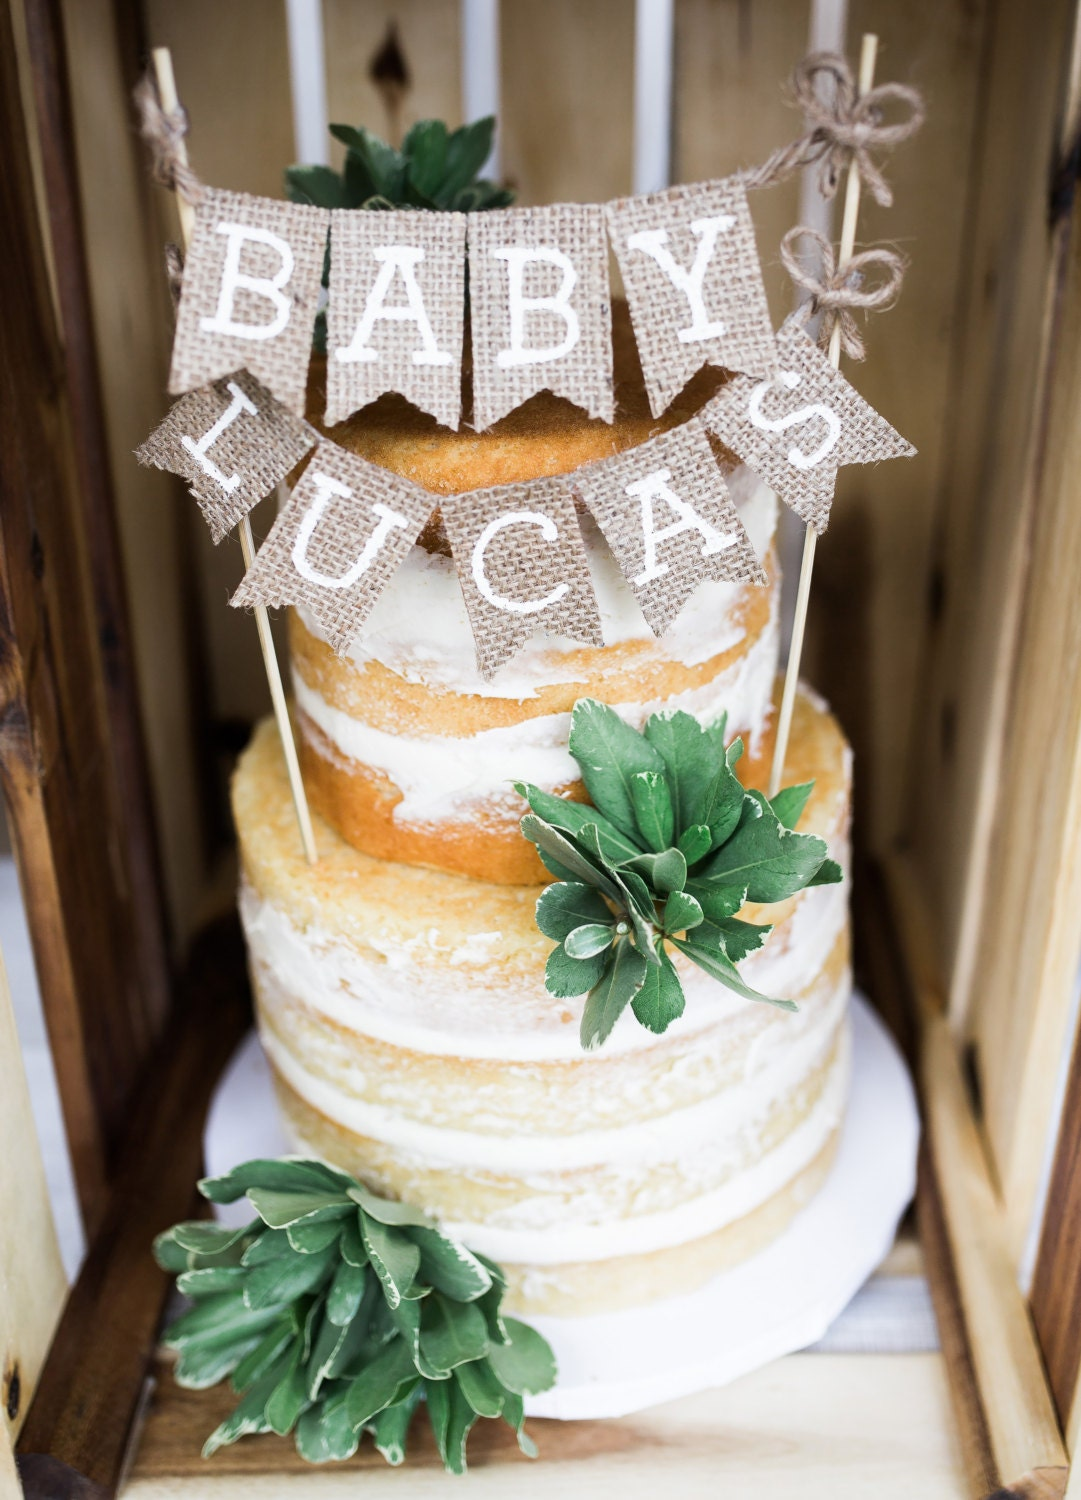 Cake Toppers Baby Shower Etsy : Baby Shower Cake Topper Name Cake Topper Baby Name Cake